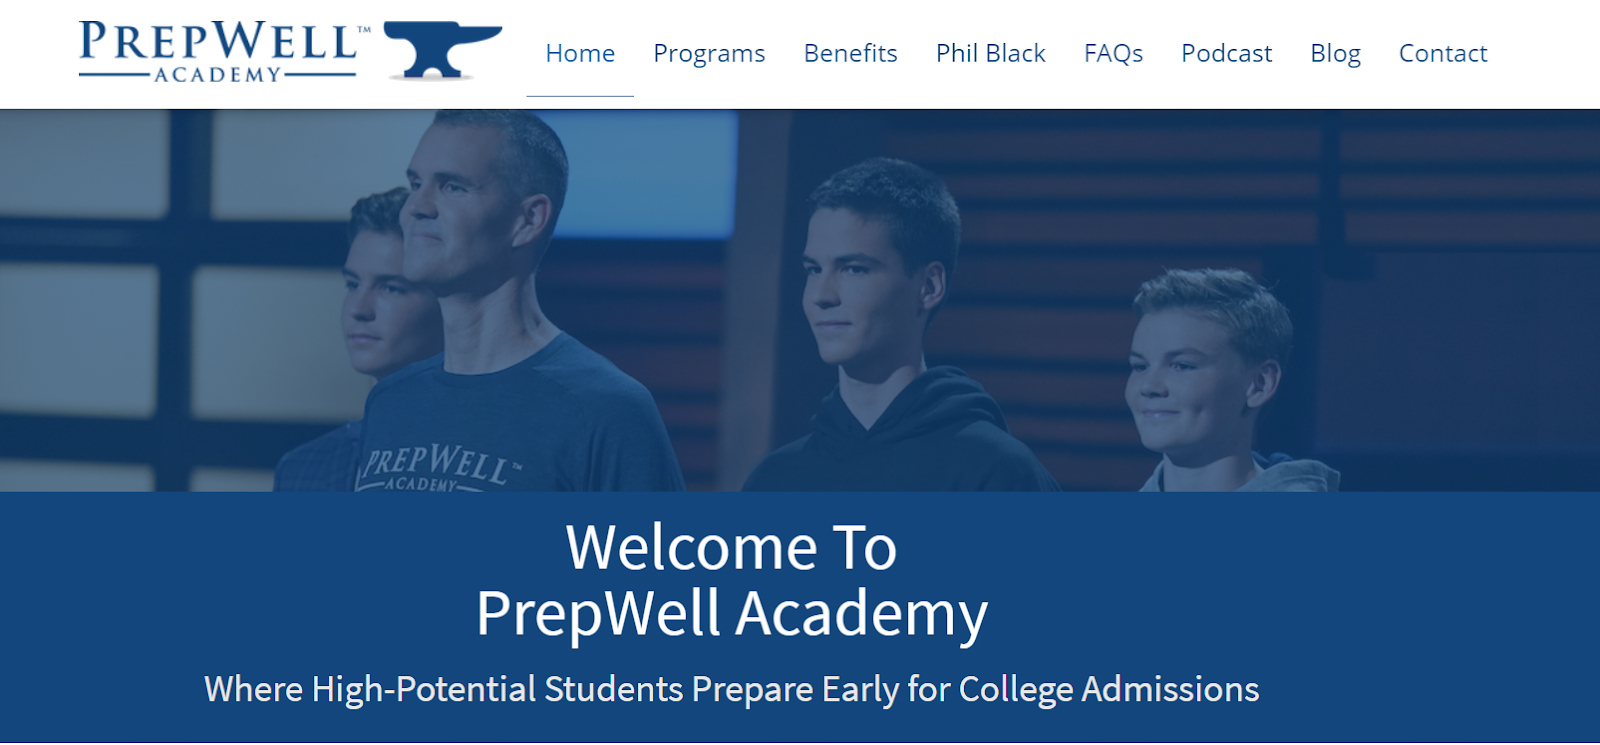 Screenshot of Prepwell Academy featuring photo of man and three boys